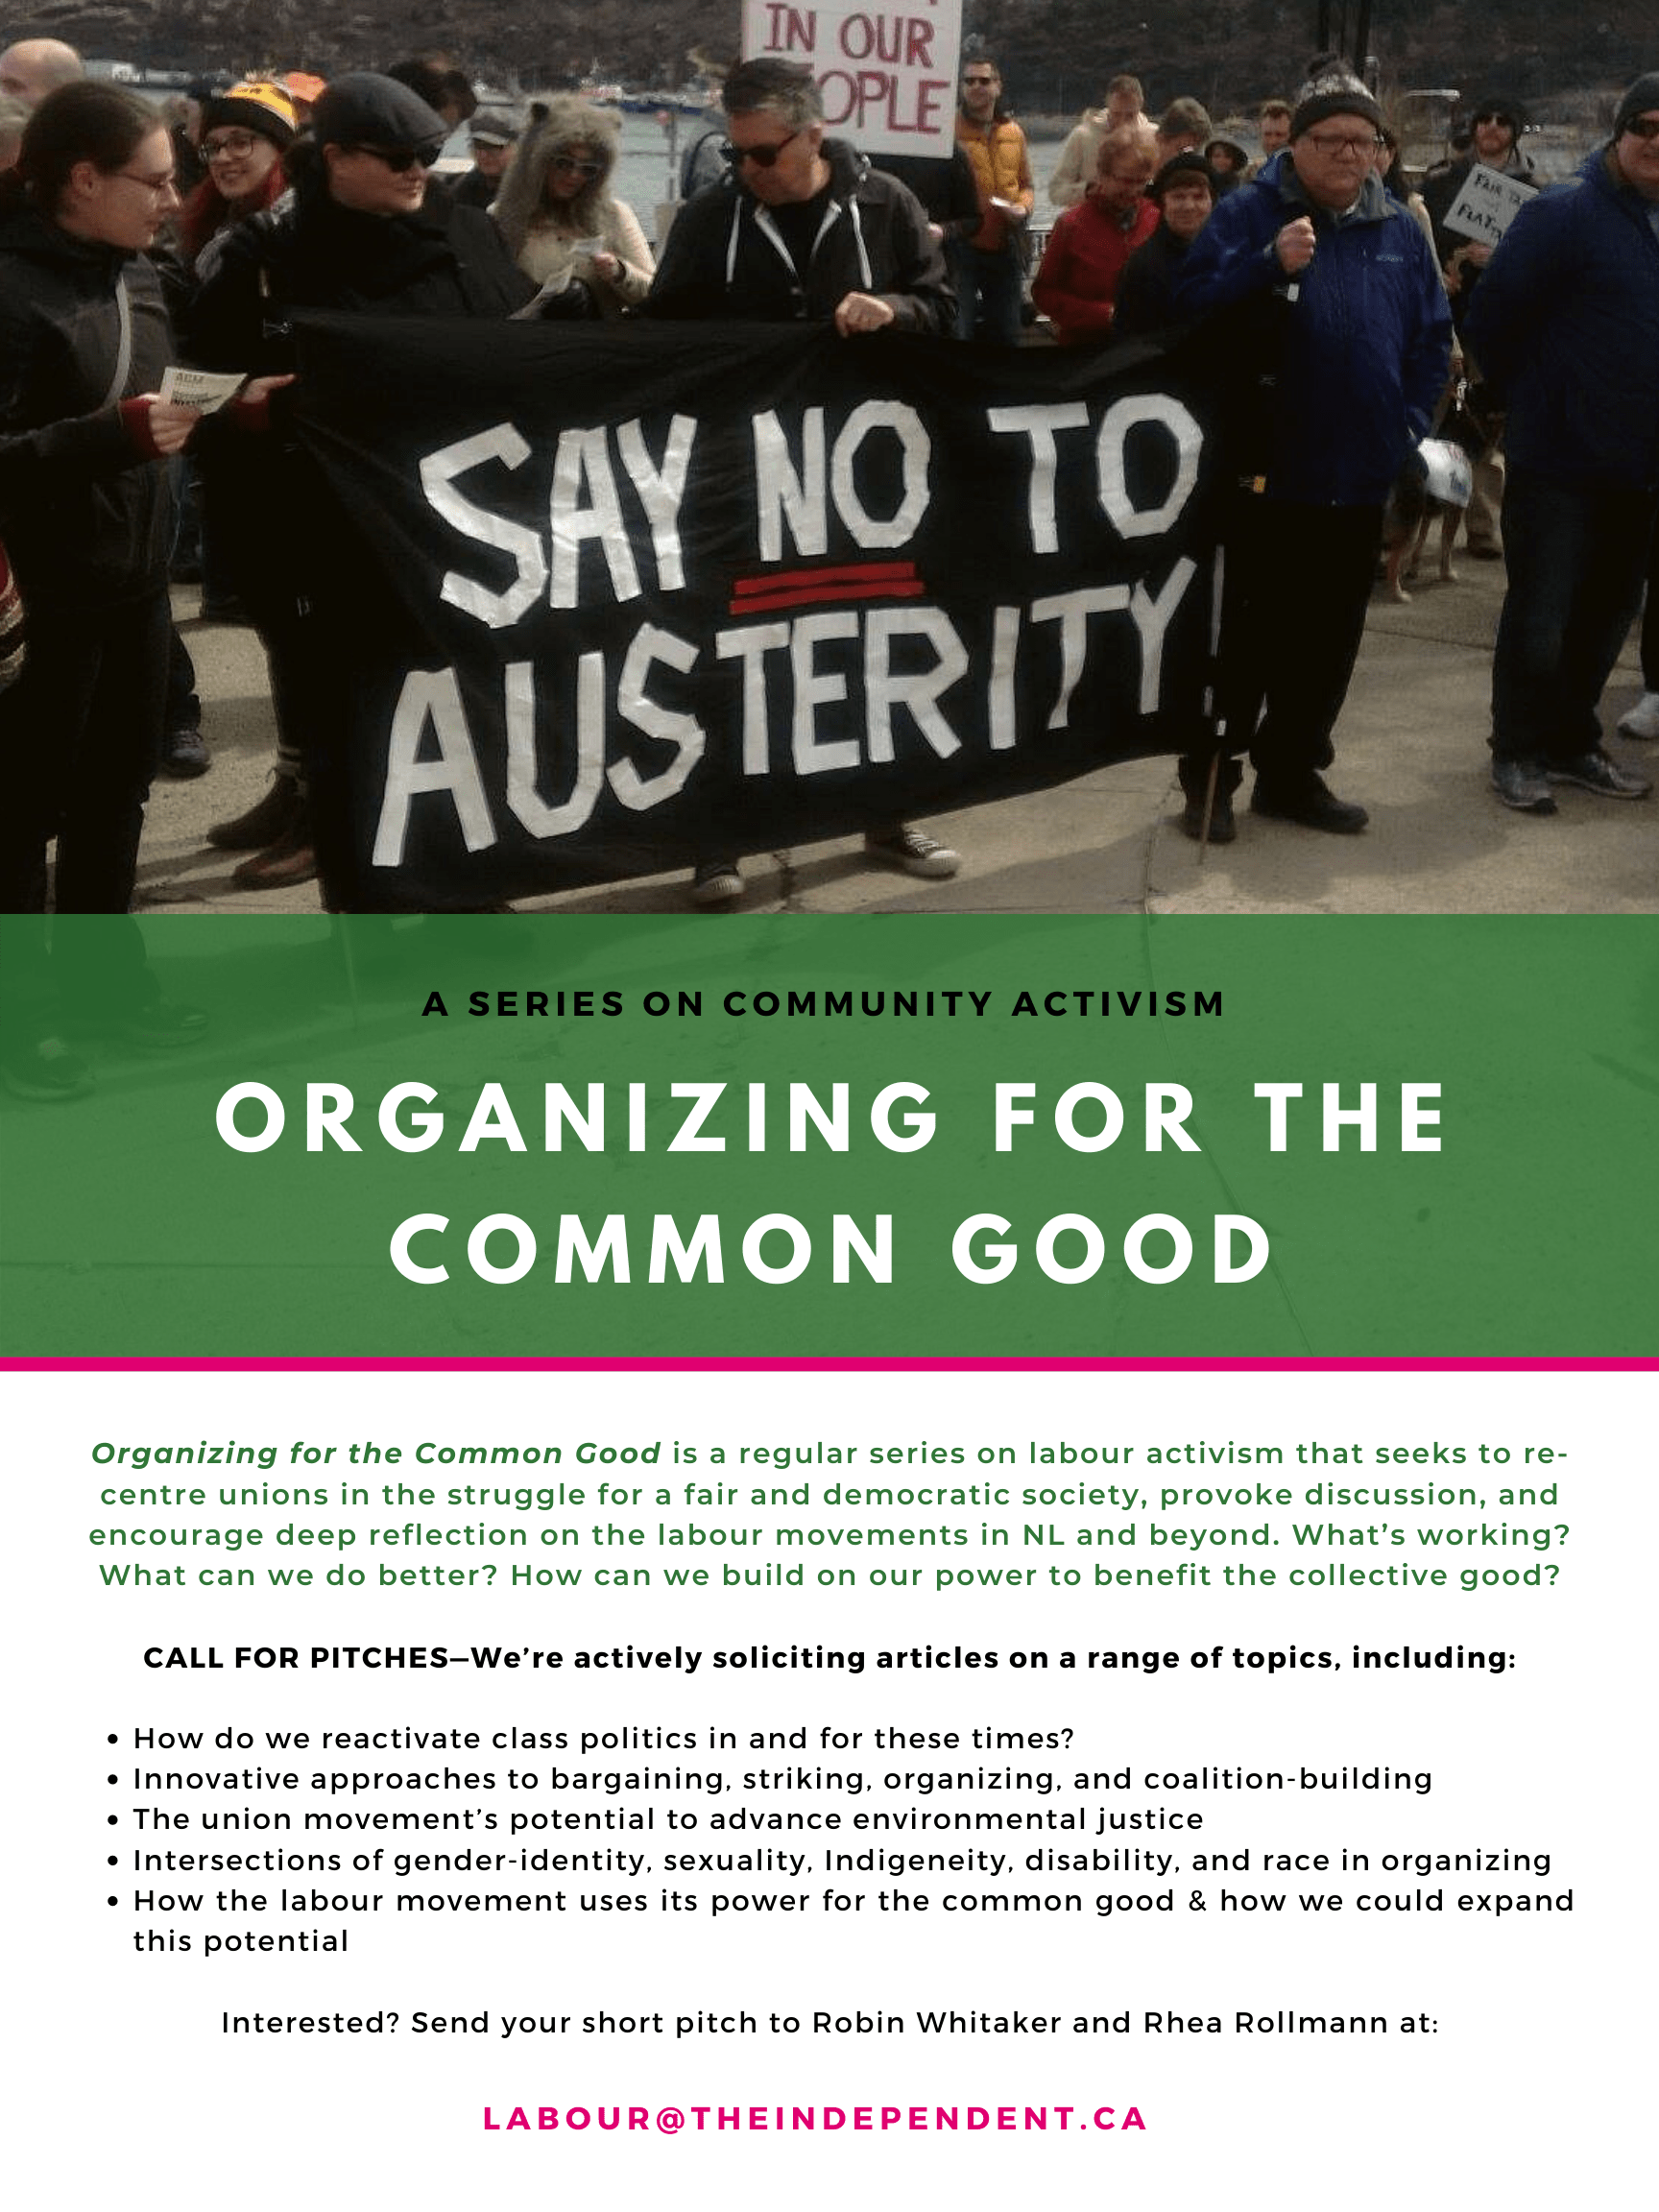 """A flyer for """"Organizing for the Common Good"""", a new regular series on labour activism that seeks to re-centre unions in the struggle for a fair and democratic society, provoke discussion, and encourage deep reflection on the labour movements in NL and beyond. What's working? What can we do better? How can we build on our power to benefit the collective good?  CALL FOR PITCHES—We're actively soliciting articles on a rage of topics, including: - How do we reactivate class politics in and for these times? - Innovative approaches to bargaining, striking, organizing, and coalition-building - The union movement's potential to advance environmental justice - Intersections of gender-identity, sexuality, Indigeneity, disability, and race in organizing - How the labour movement uses its power for the common good & how we could expand this potential  Interested? Send your short pitch to Robin Whitaker and Rhea Rollmann at labour@theindependent.ca"""